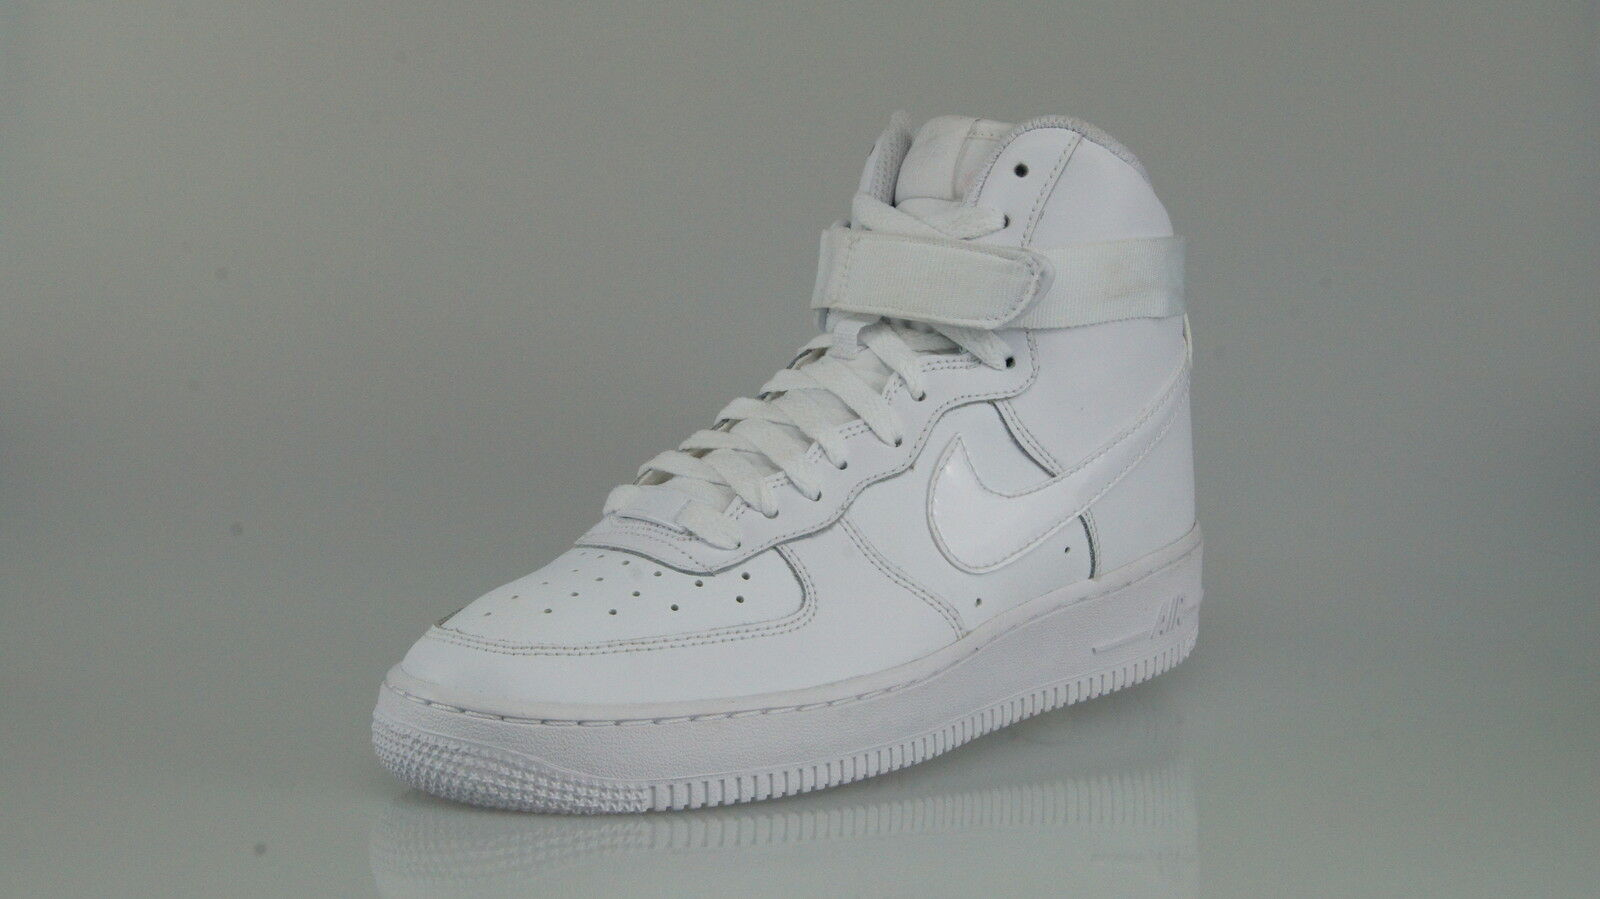 NIKE AIR FORCE 1 HIGH Size 38,5 38,5 38,5 (6Y) ab9bdb